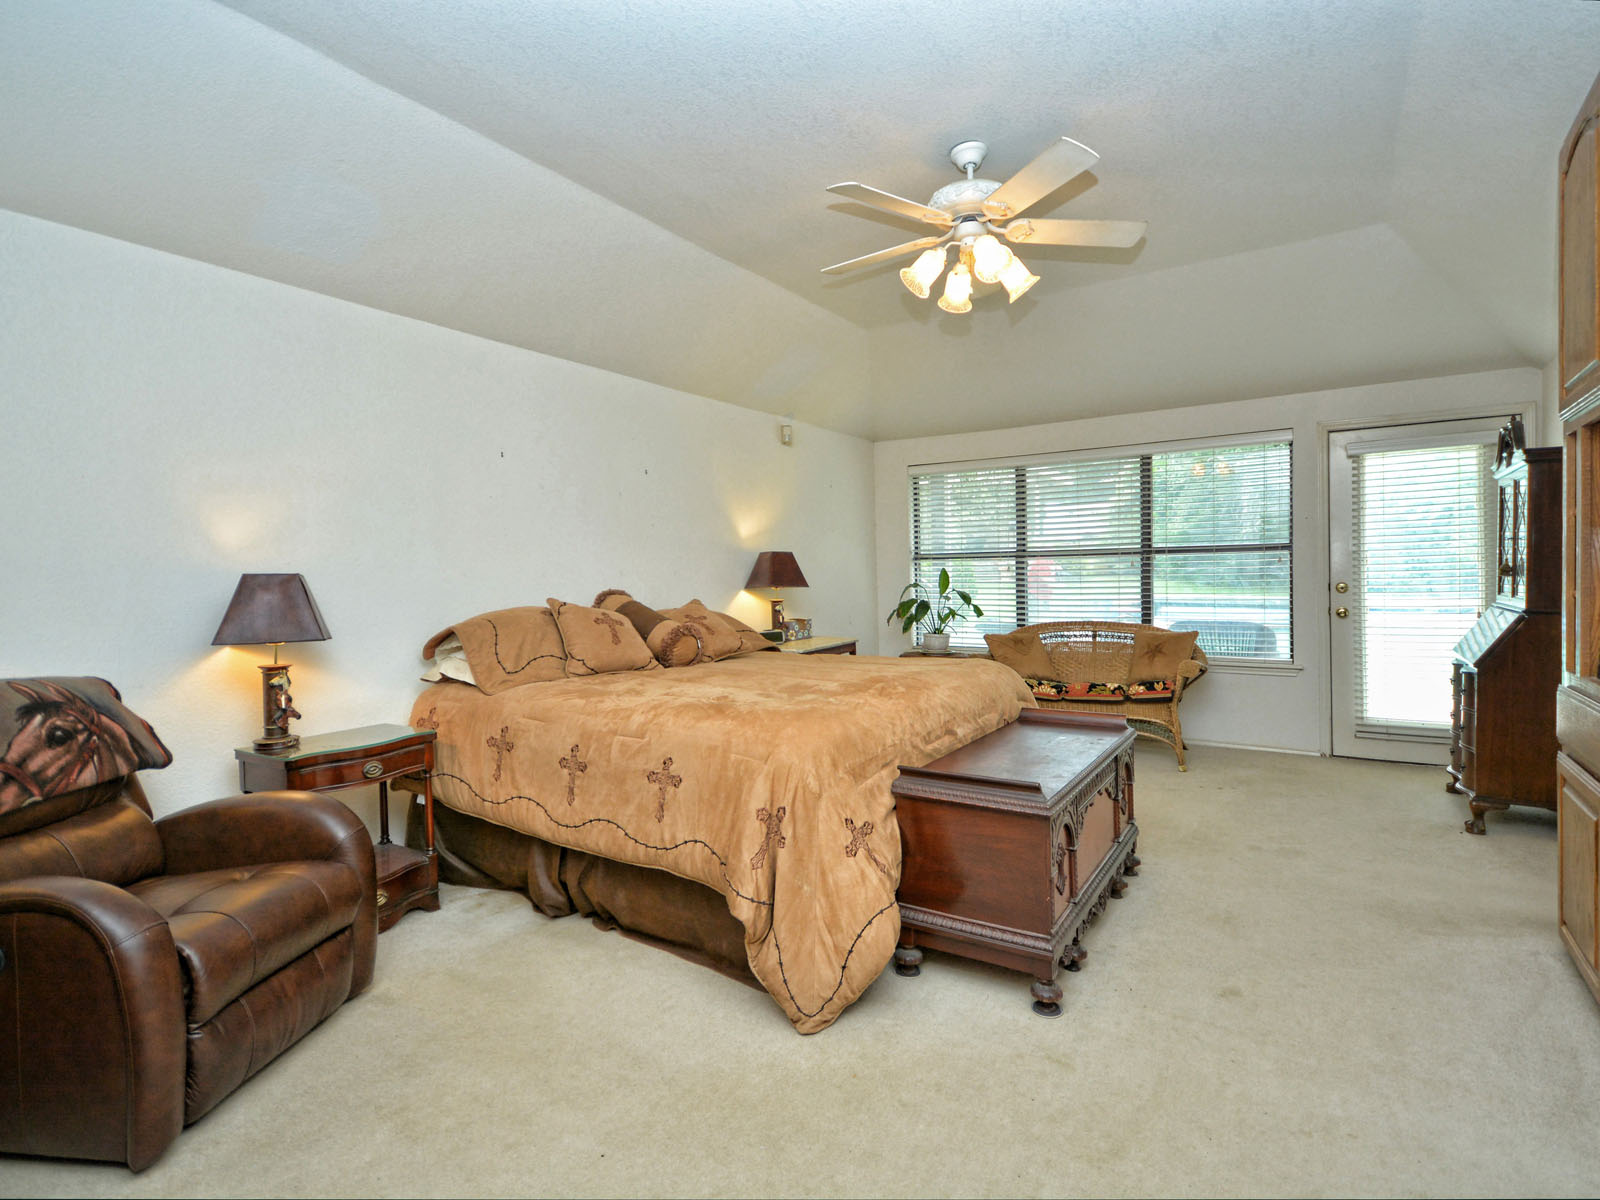 Additional photo for property listing at Entertain, Ride and Hunt Without Leaving Home 301 Lookout Dr Liberty Hill, Texas 78642 United States